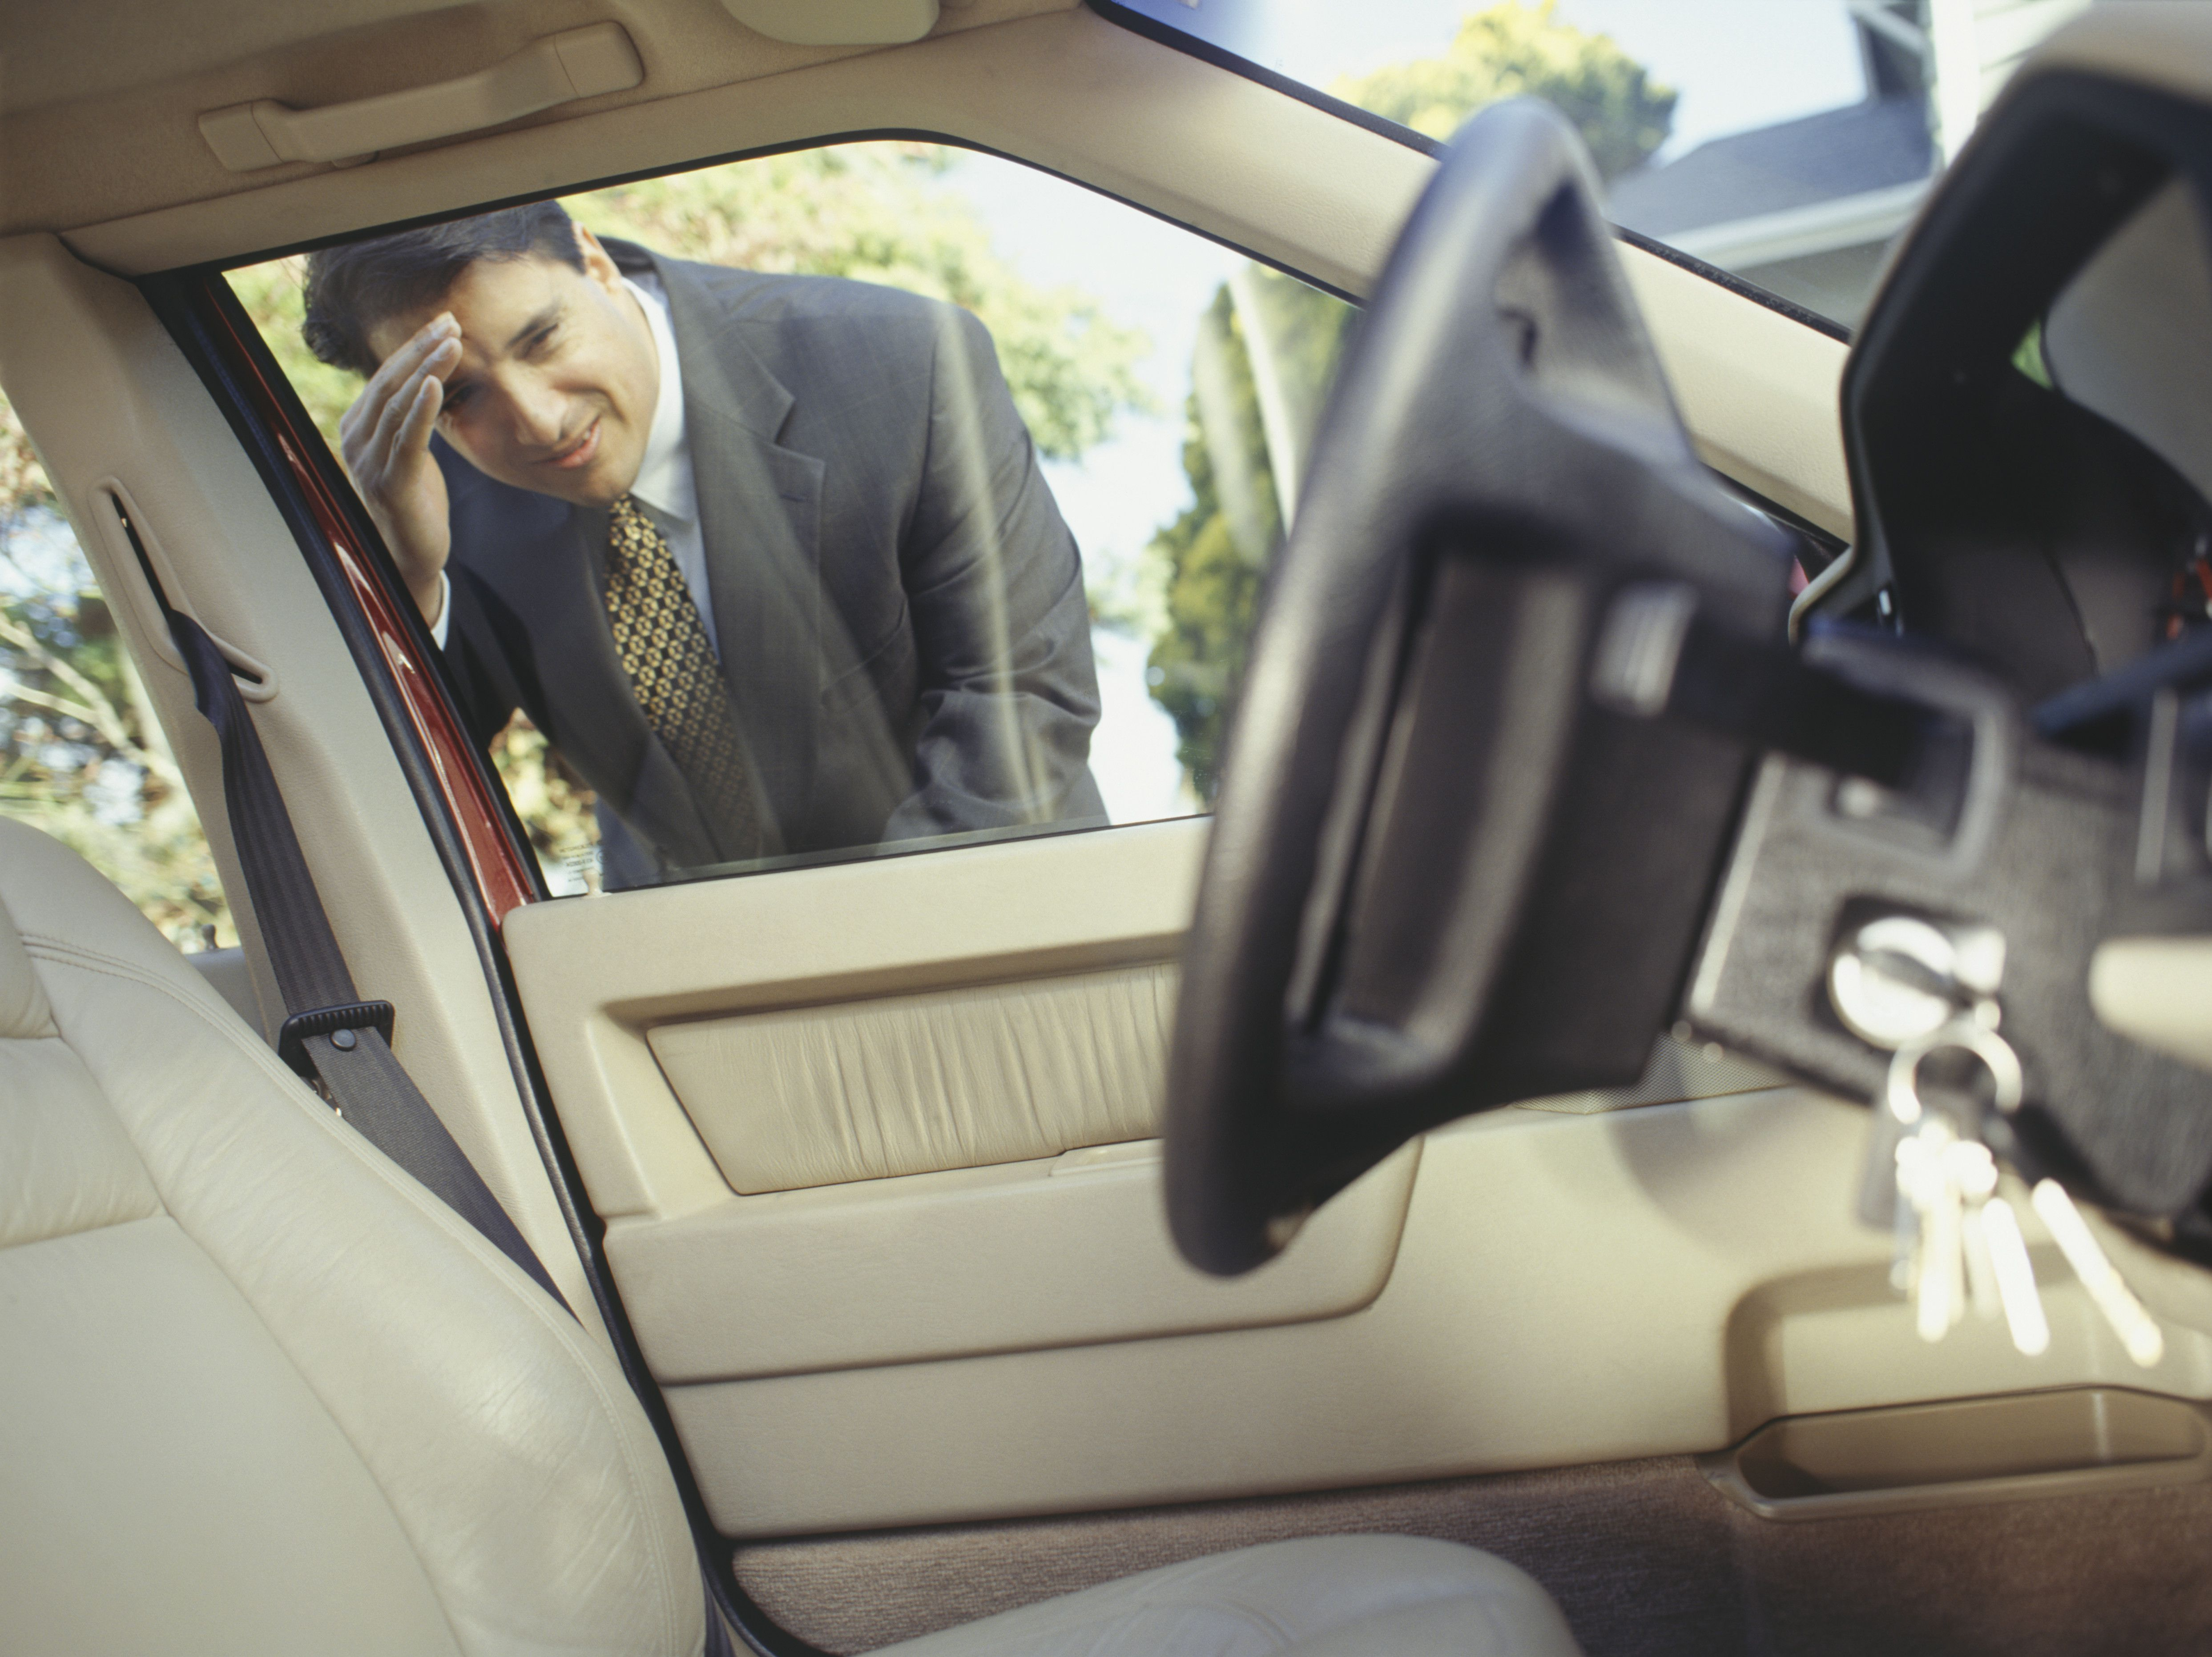 Locked Out Of Your Car Heres What To Do